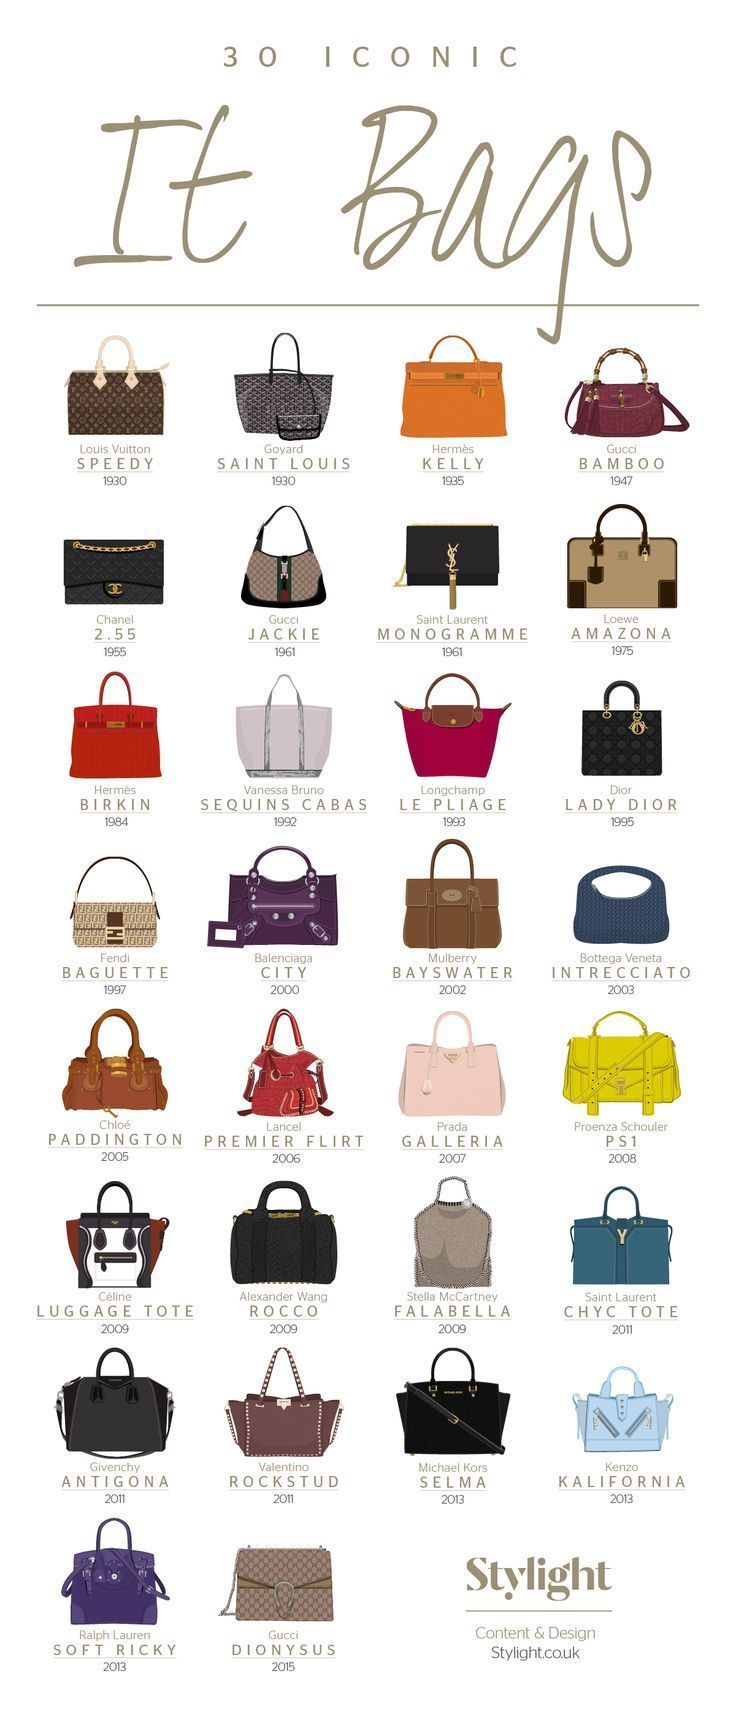 New Month, New Bag! A killer handbag is enough to transform even the most simplest of outfits and a key investment for your wardrobe. Unlike #shoes or clothes, bags are proven to stand the test of time.To help you finding your bag soul mate, Stylight have compiled a list of the 30 most iconic bags ever produced. Credit cards at the ready!